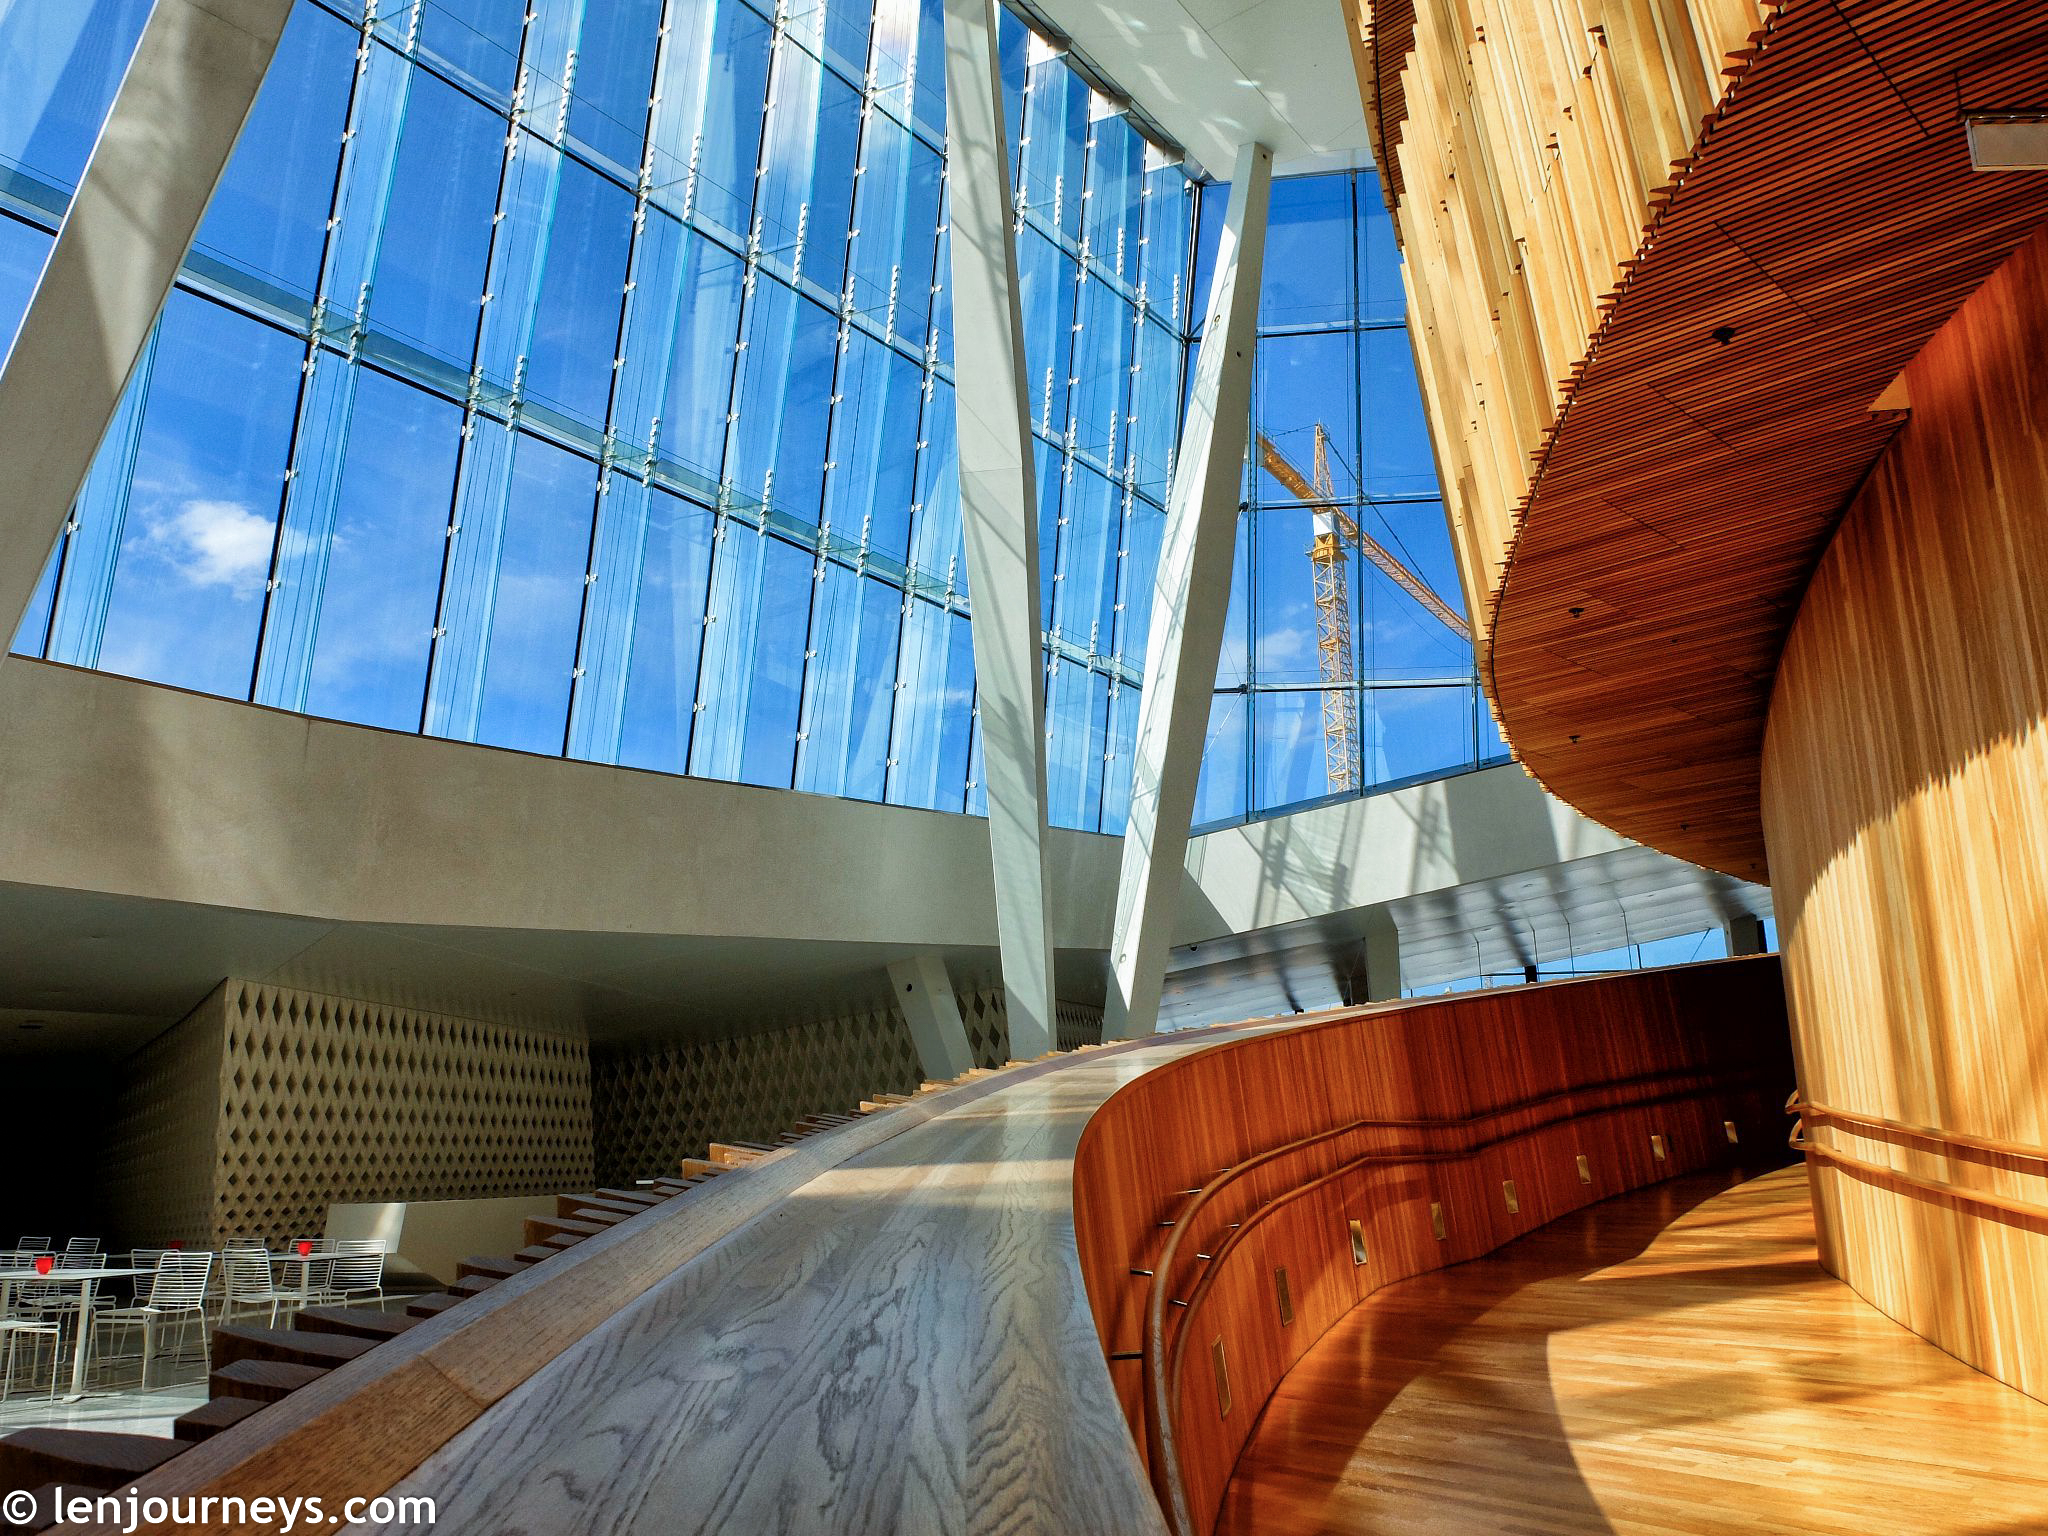 The interior of Oslo Opera House